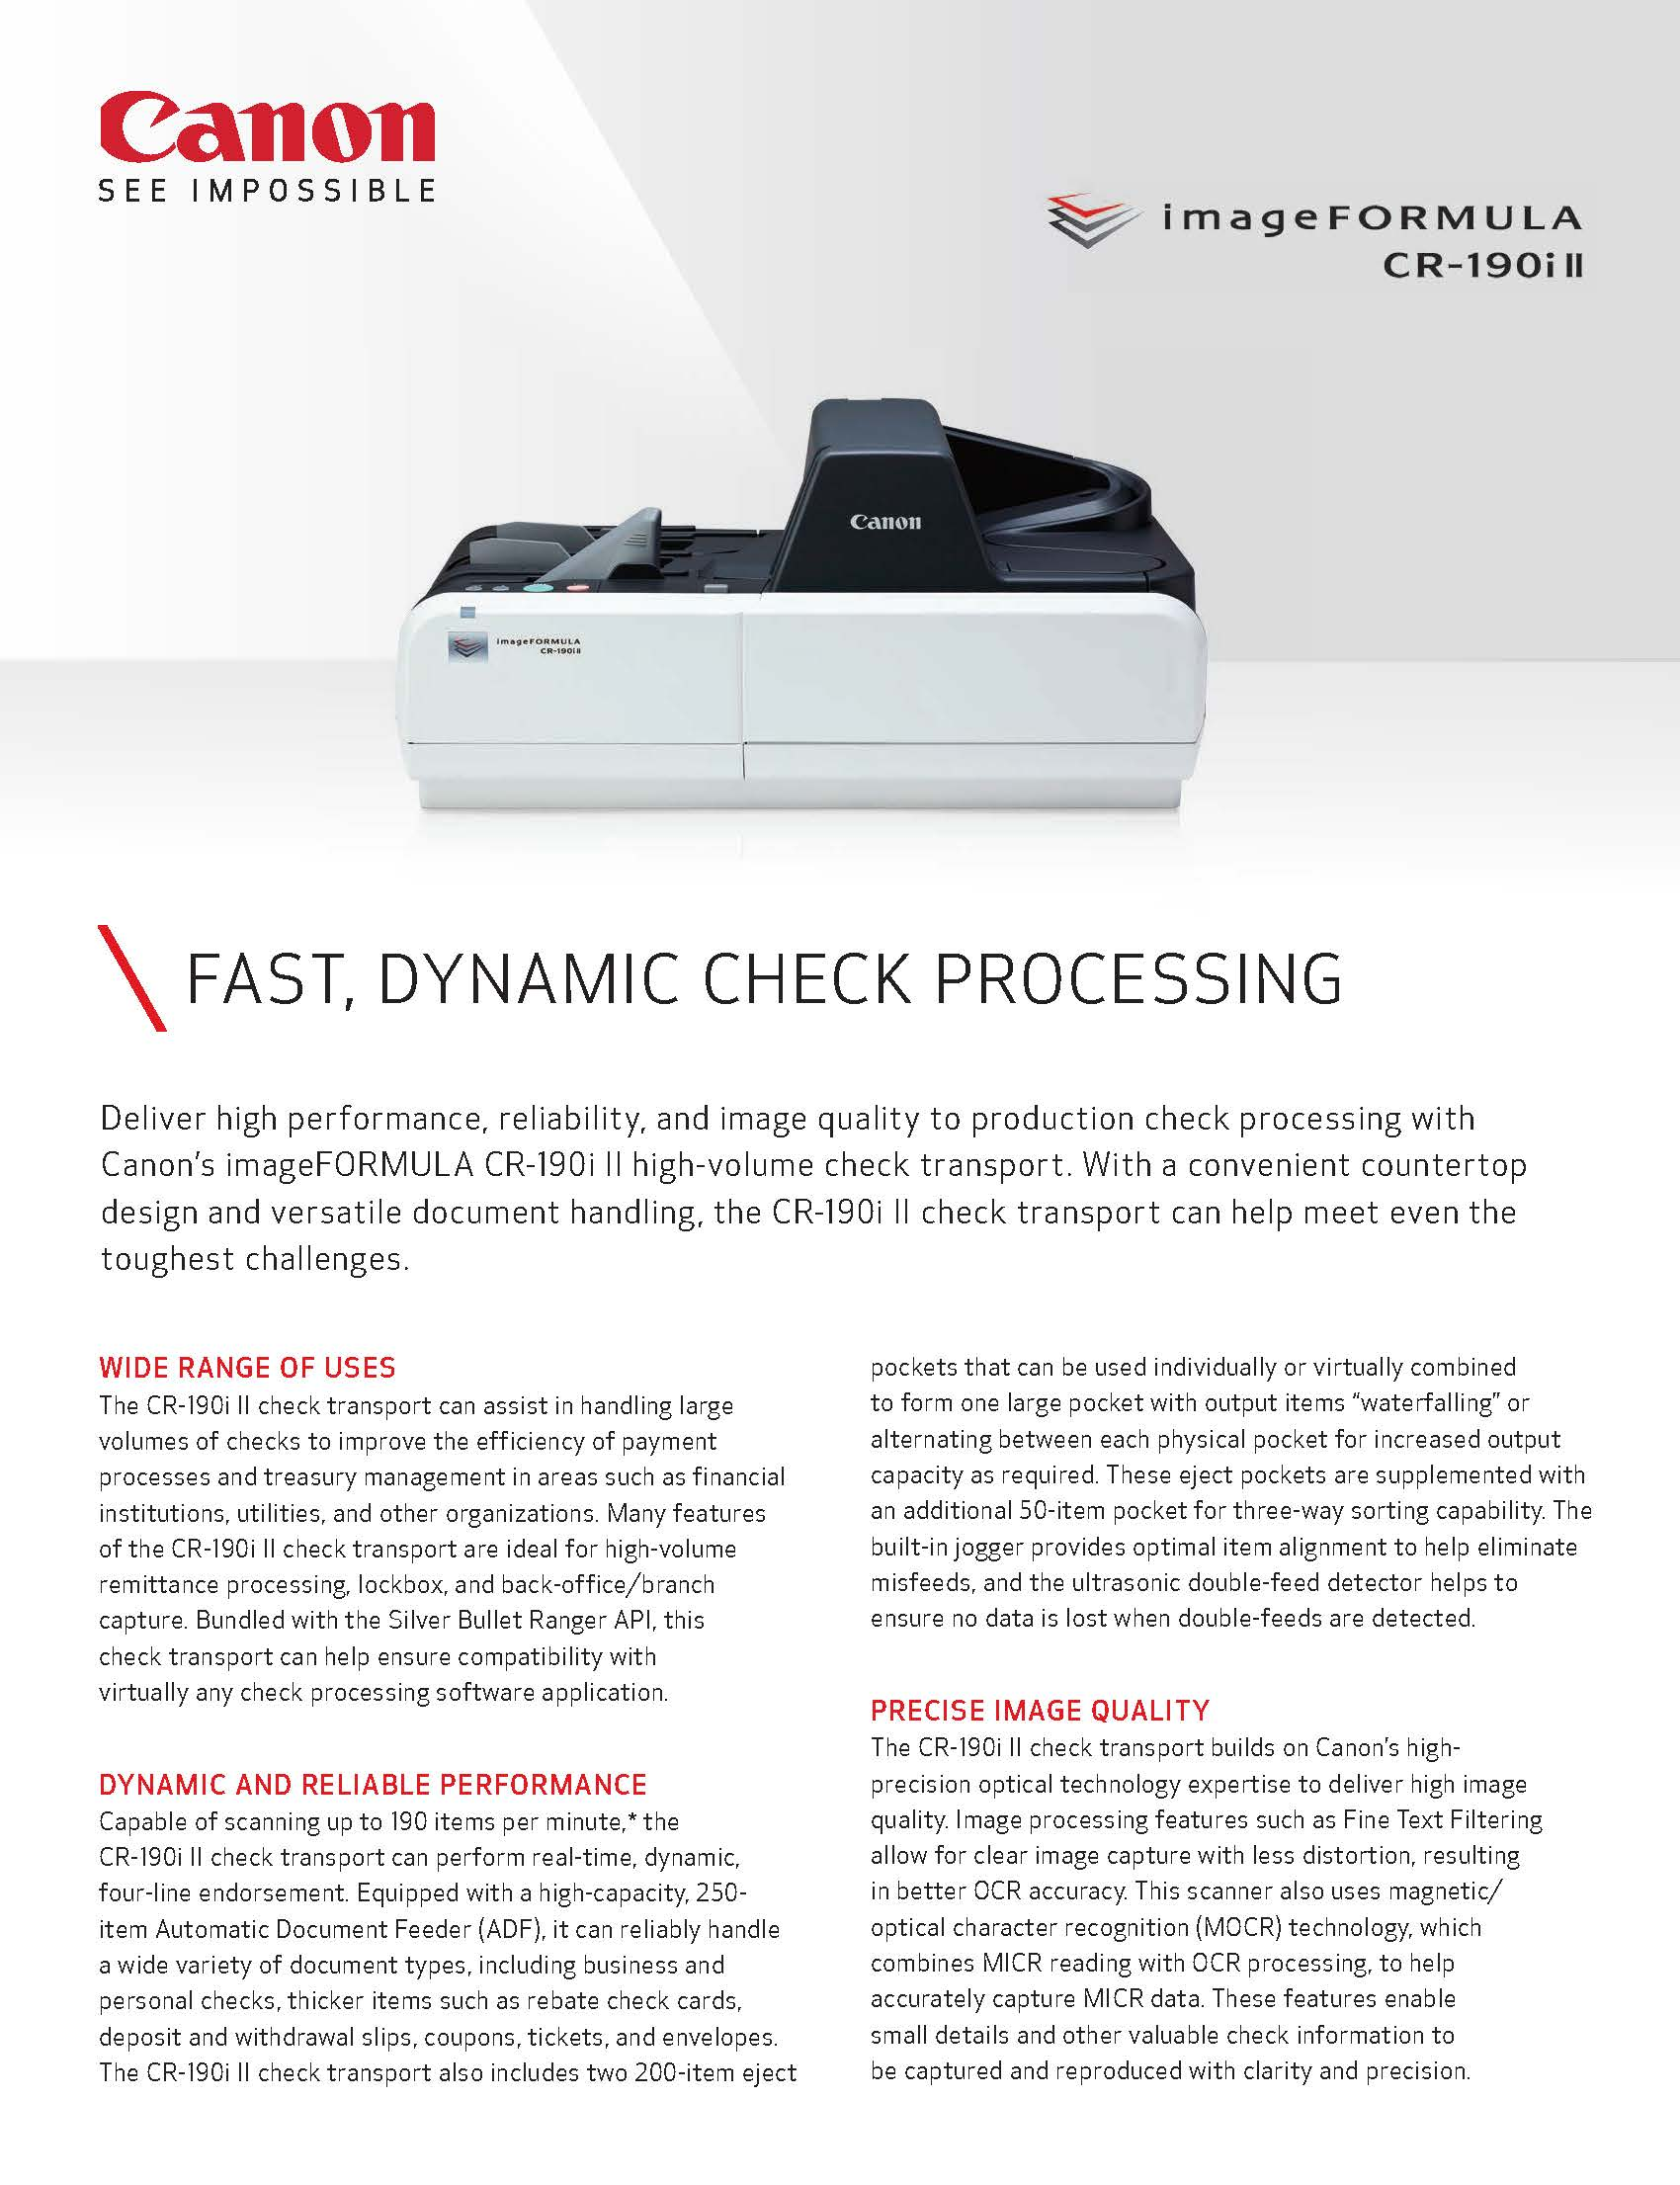 NEW: FAST, DYNAMIC CHECK PROCESSING